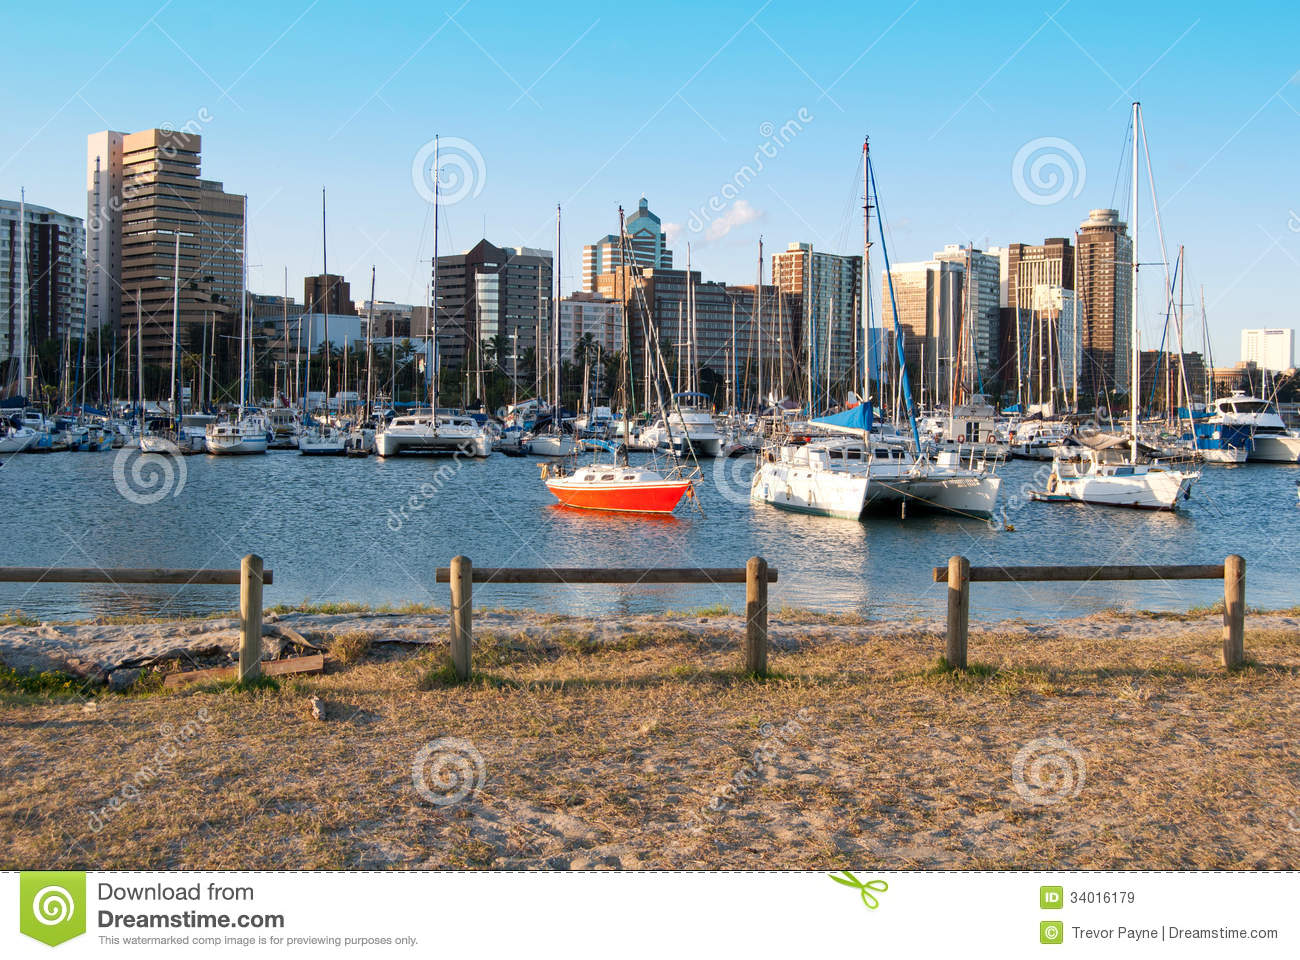 Durban Small Craft Harbour Royalty Free Stock Images.